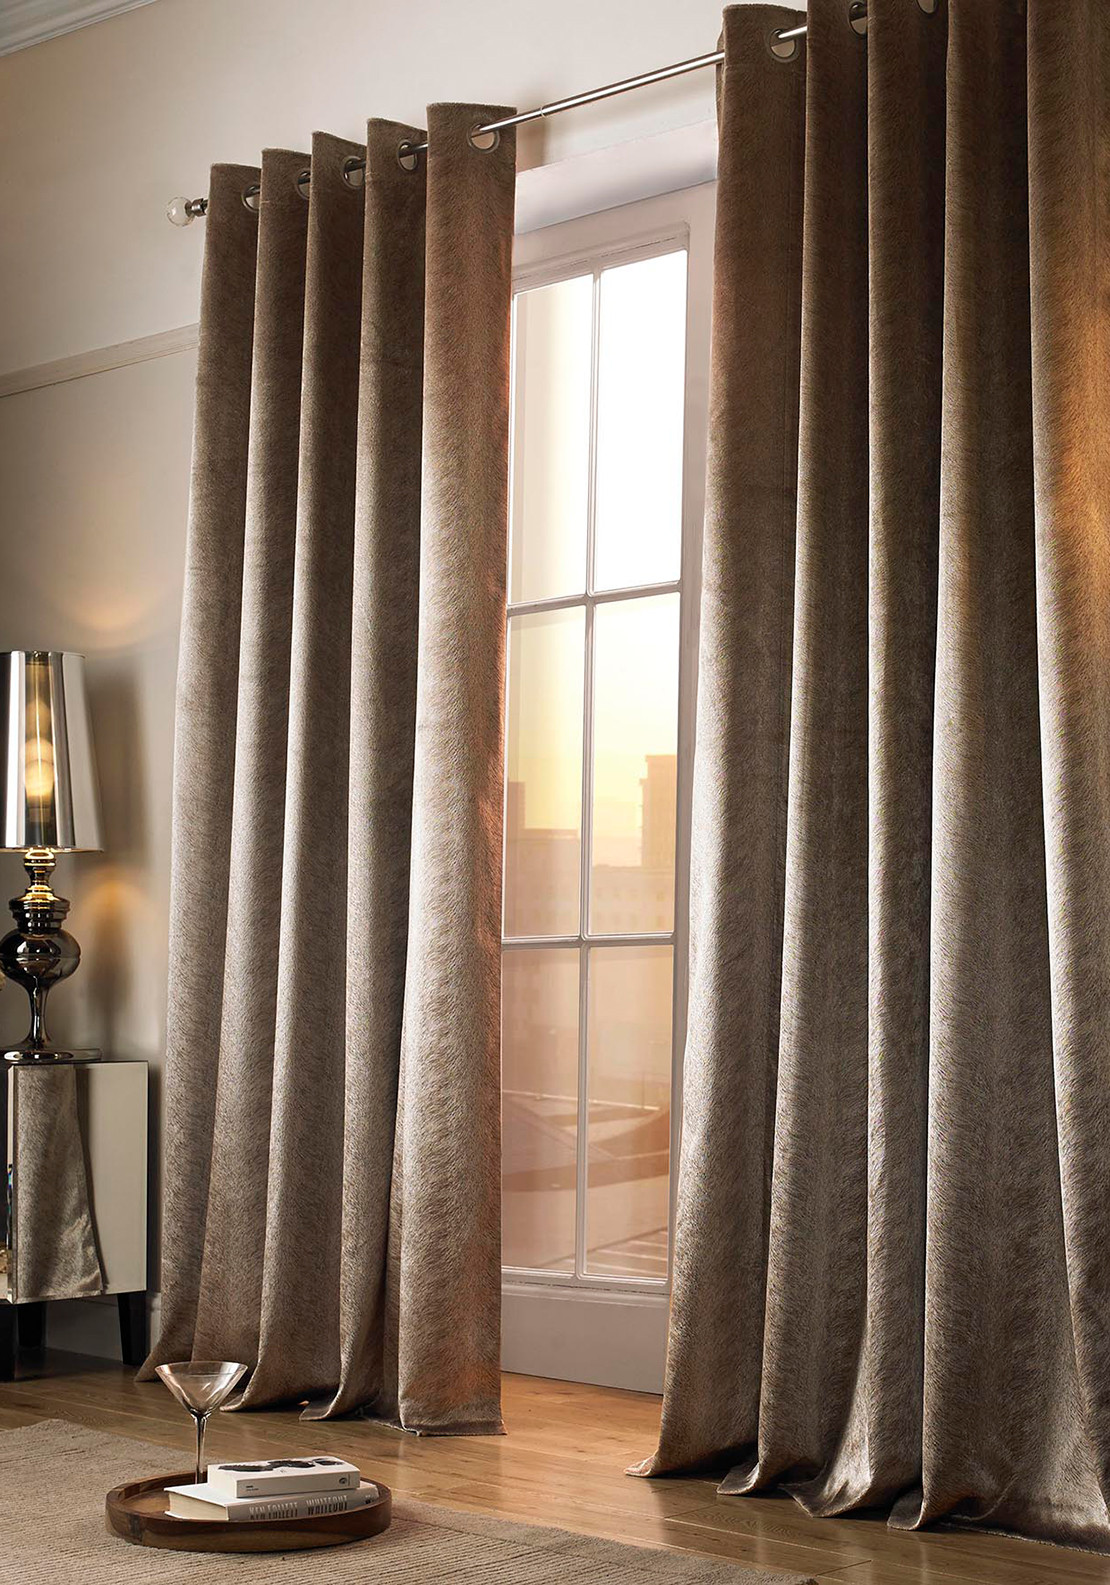 Kylie Minogue at Home Adelphi Velvet Curtains, Caramel